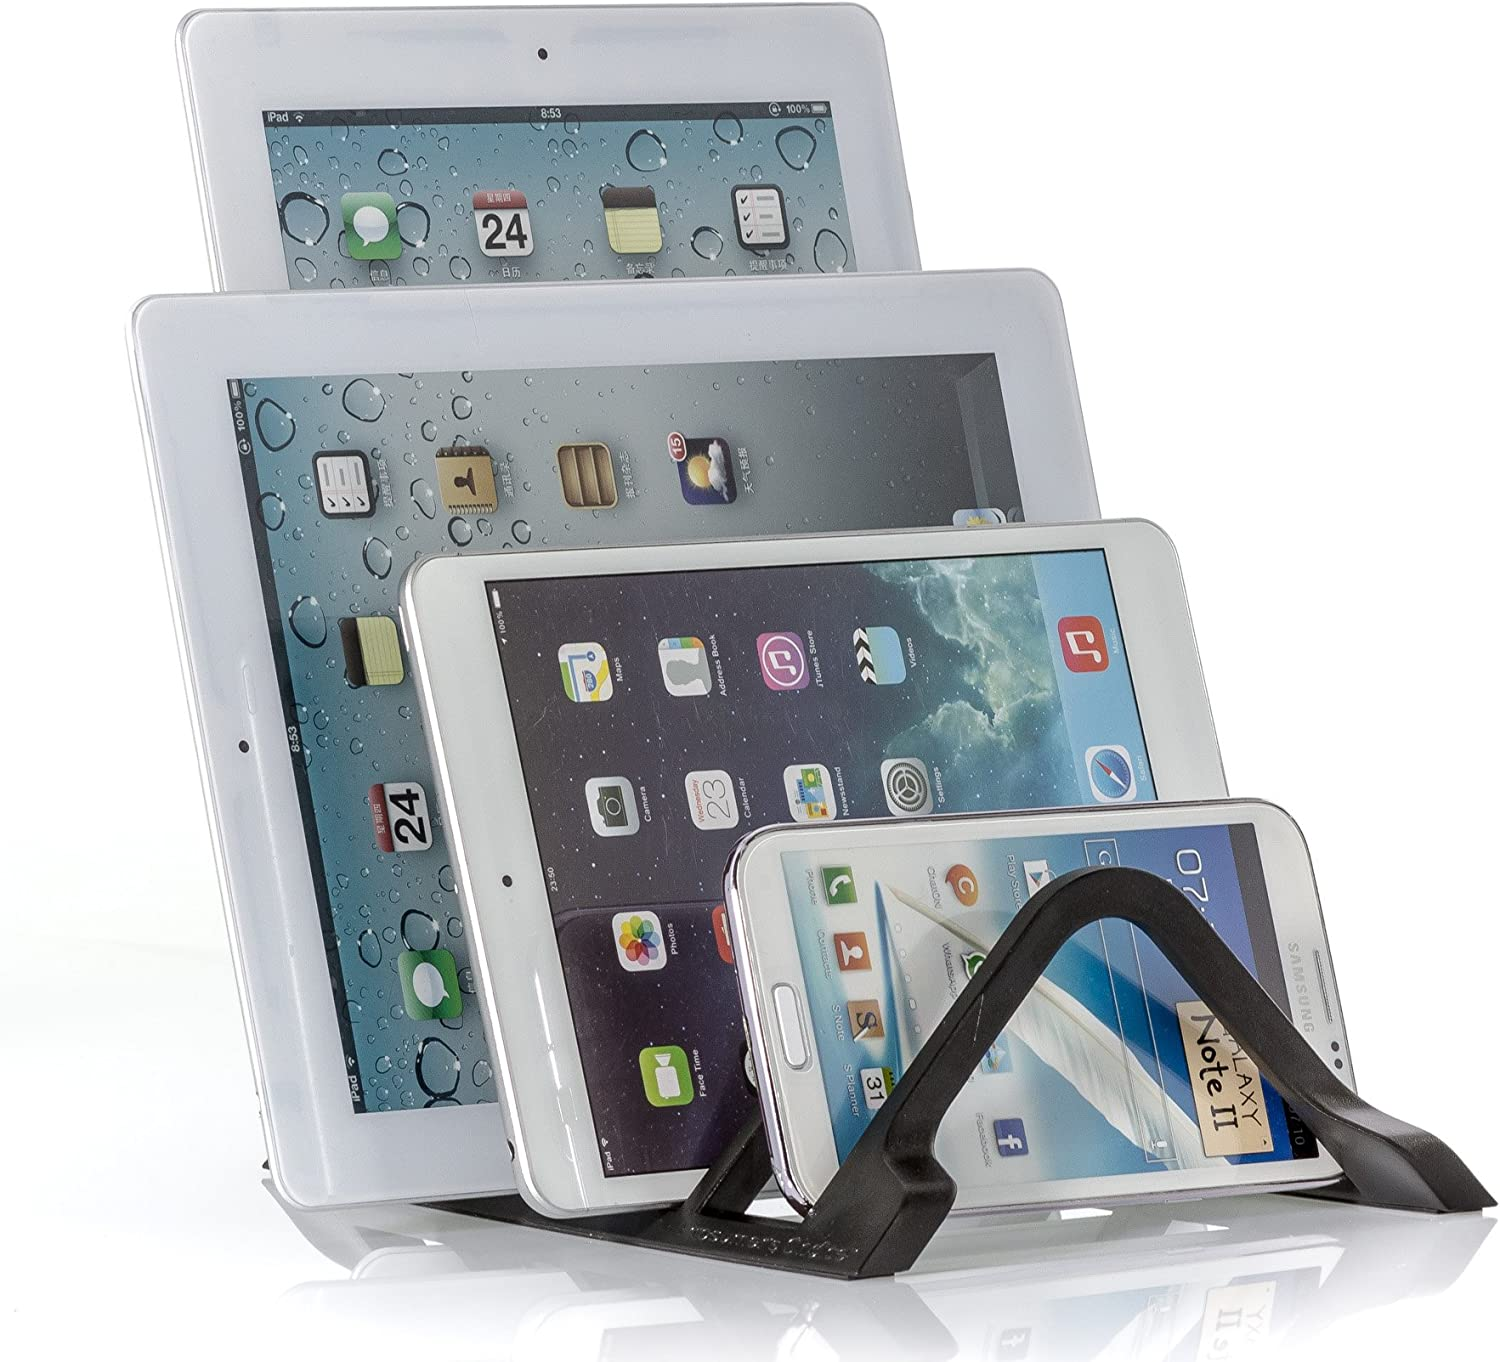 Prosumer's Choice Universal 4 Tablet and Smartphone Charging Organizer Rack/Desktop Stand Holder